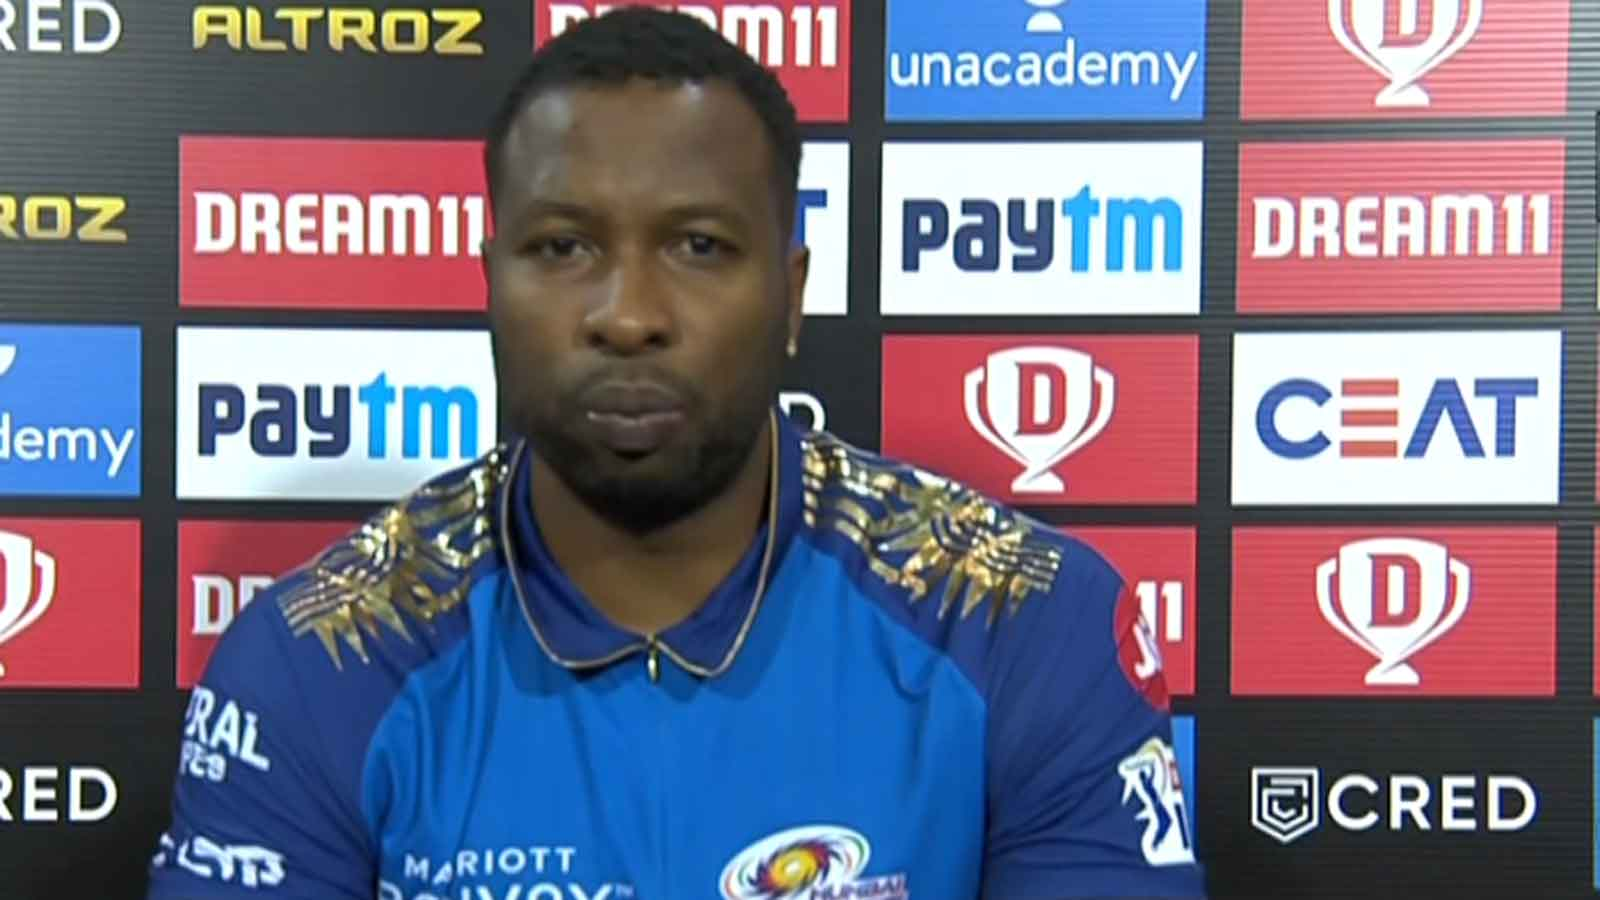 ipl-2020-mi-vs-rcb-wanted-to-come-back-stronger-after-last-defeat-says-pollard